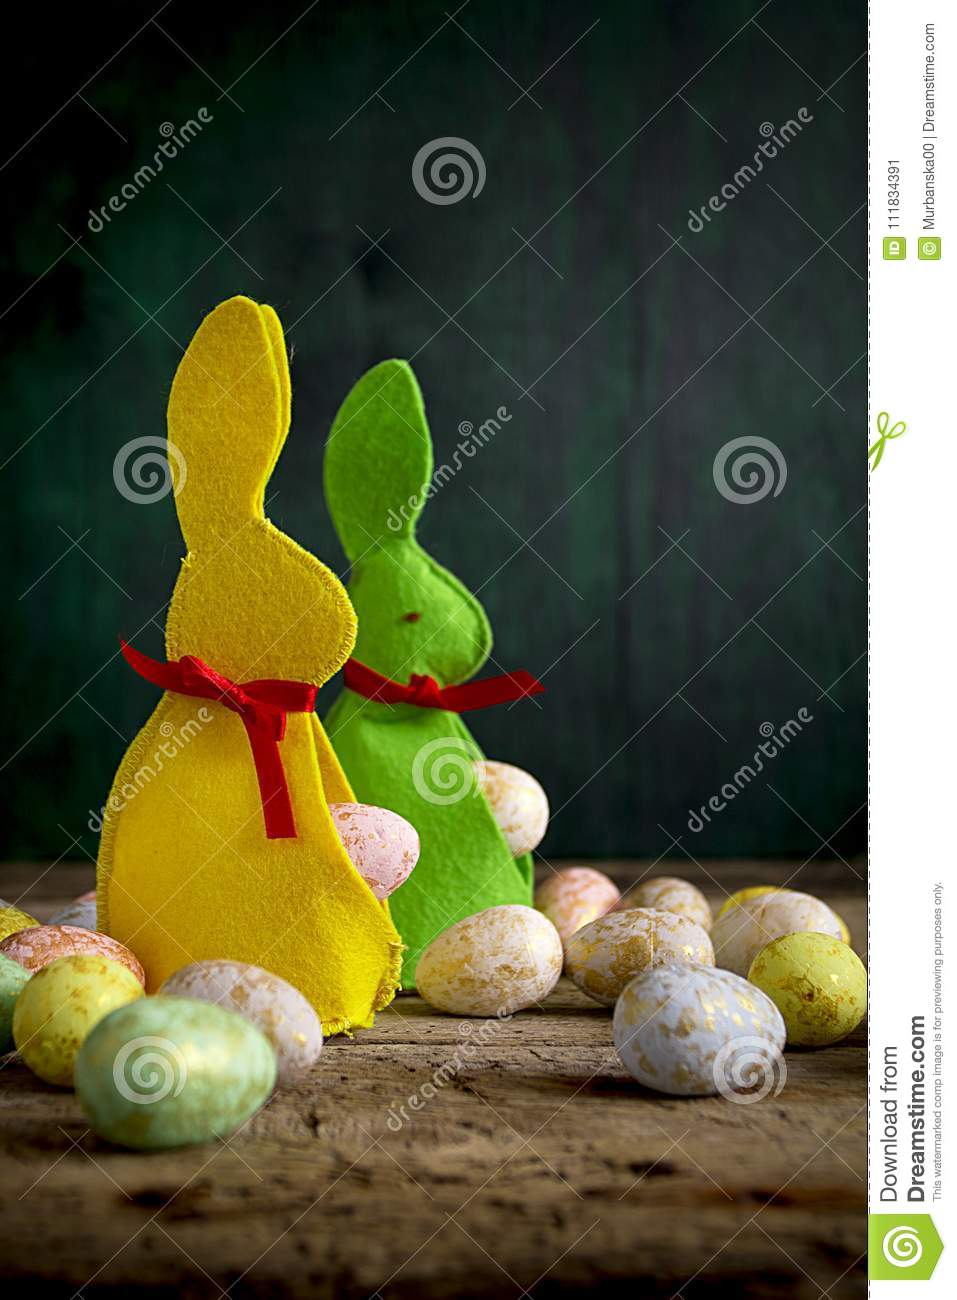 Easter rabbits with eggs on wooden table.